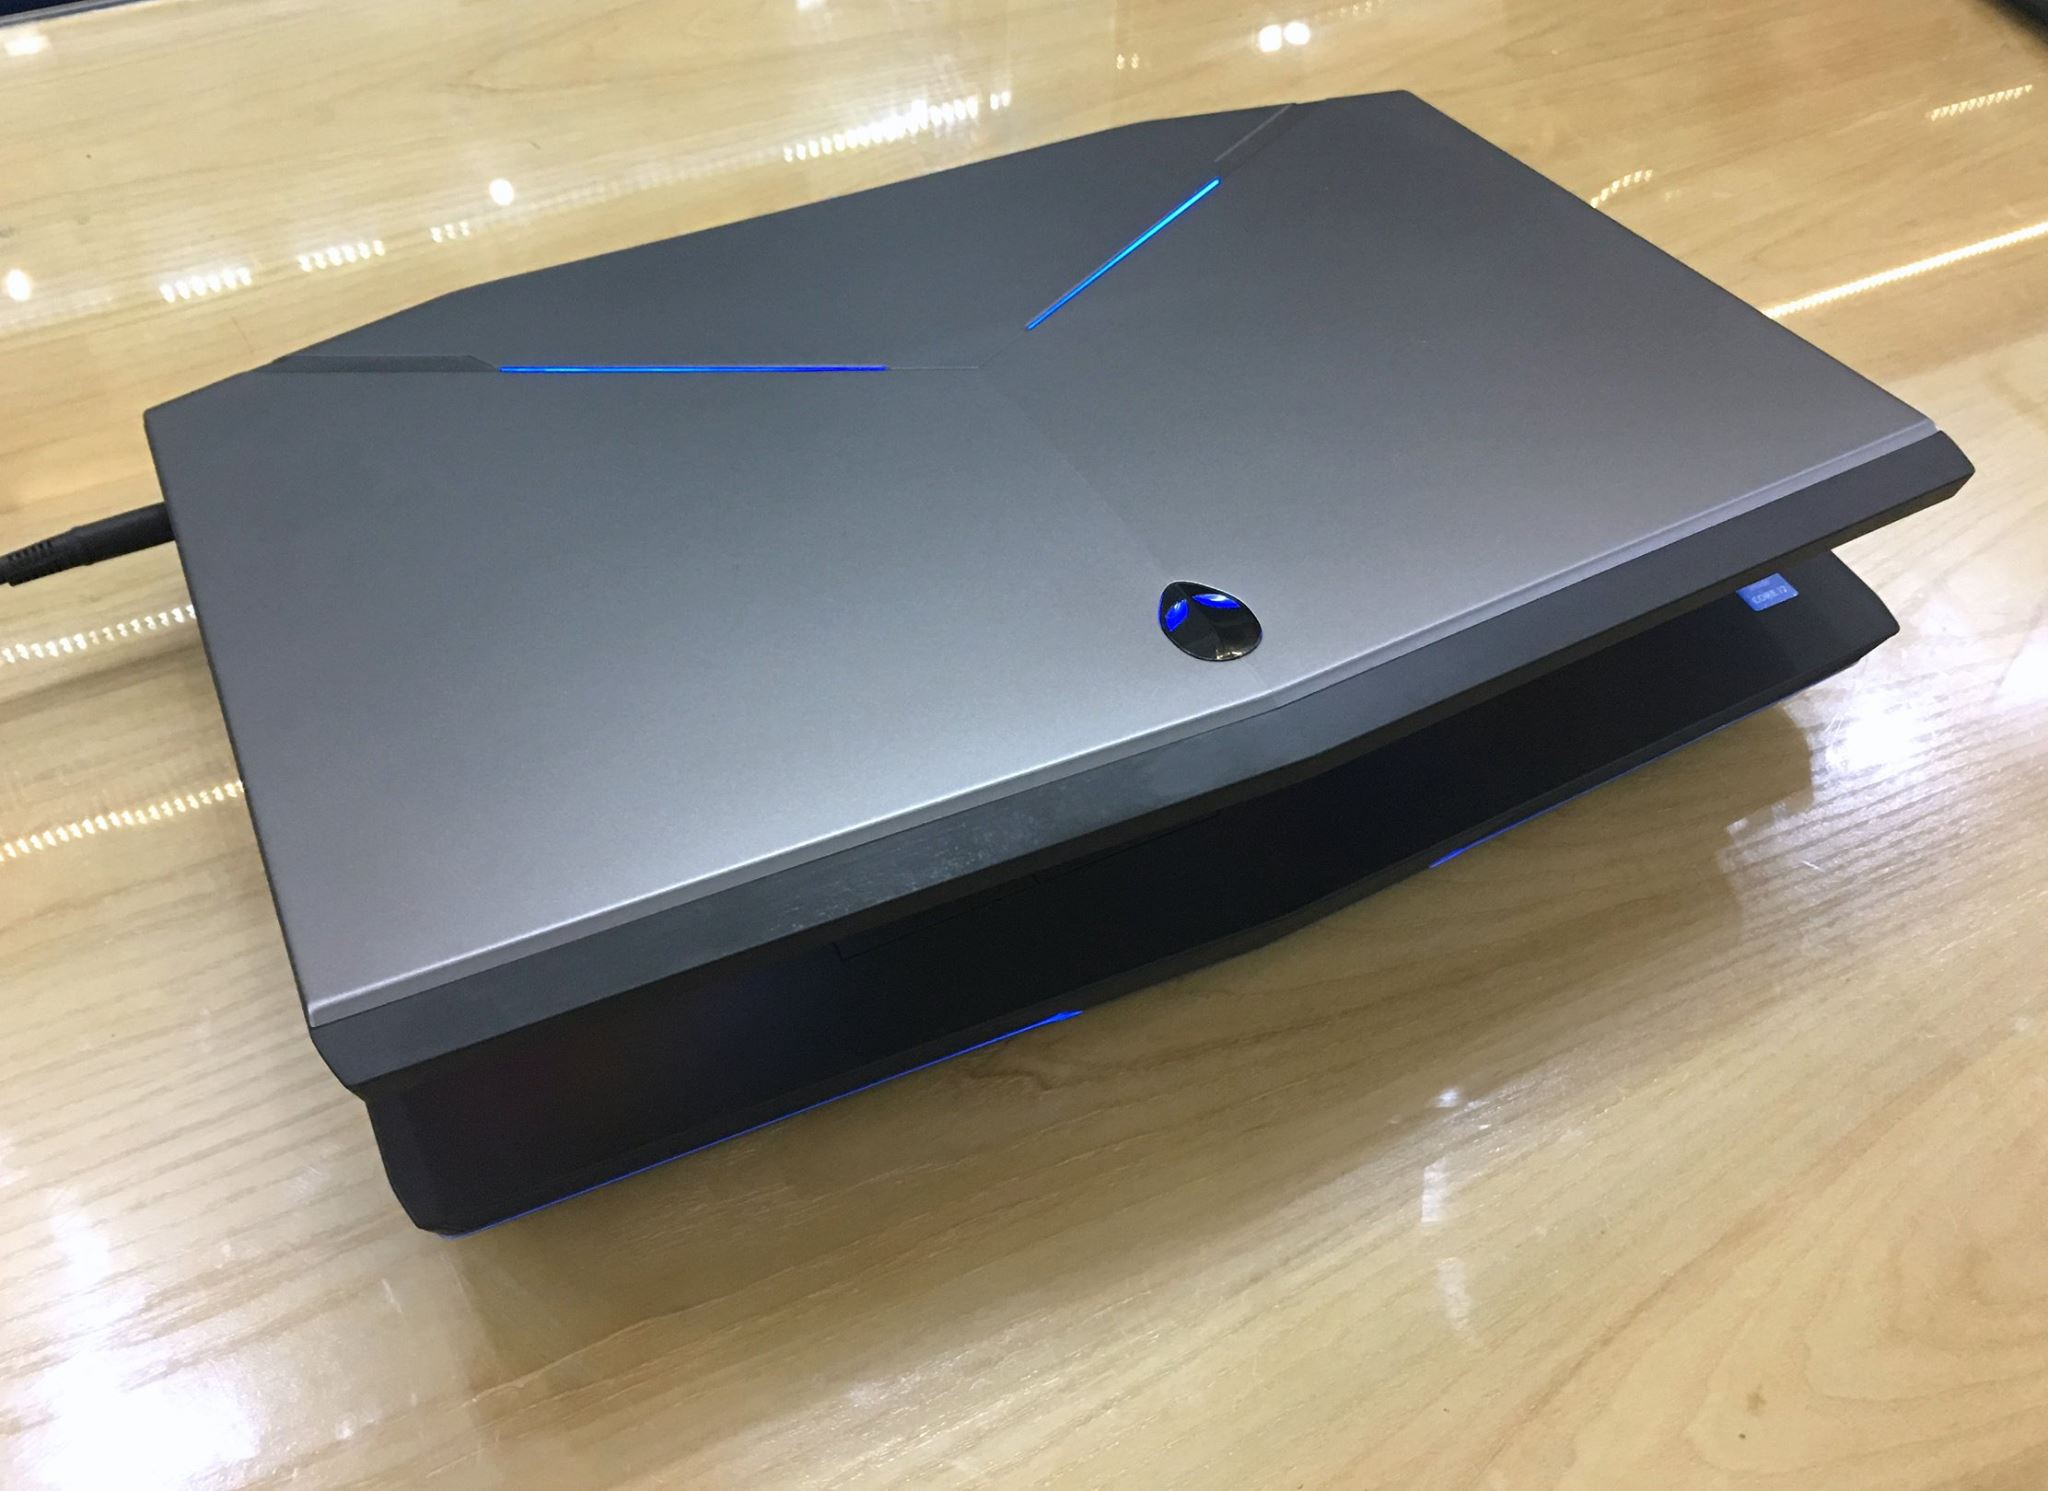 LAPTOP DELL ALIENWARE 17 R5 VGA GTX 880M 8GB-7.jpg